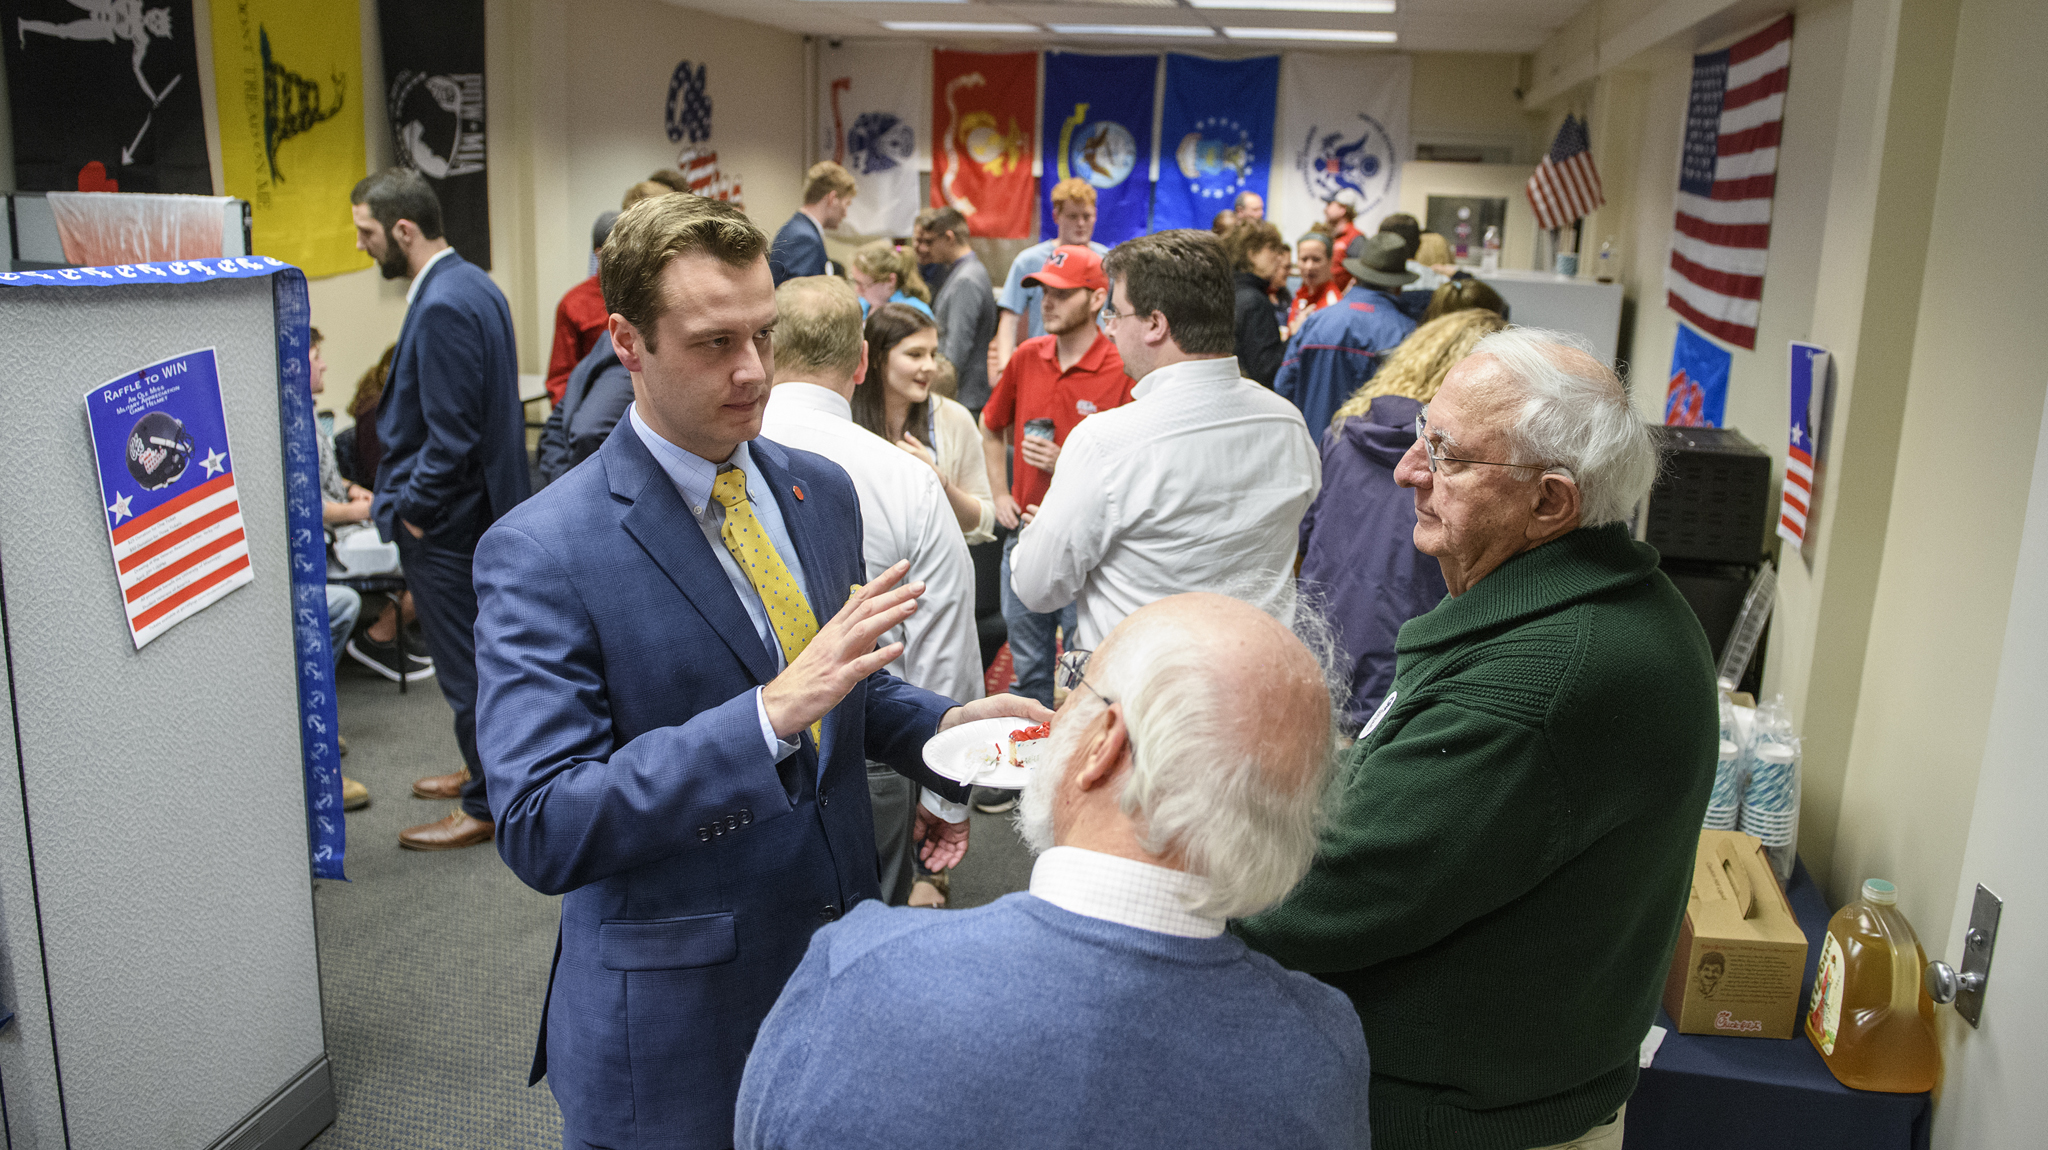 Andrew Newby (left), assistant director for Veteran and Military Services,  speaks with guests at the opening of the Veterans Resource Center.